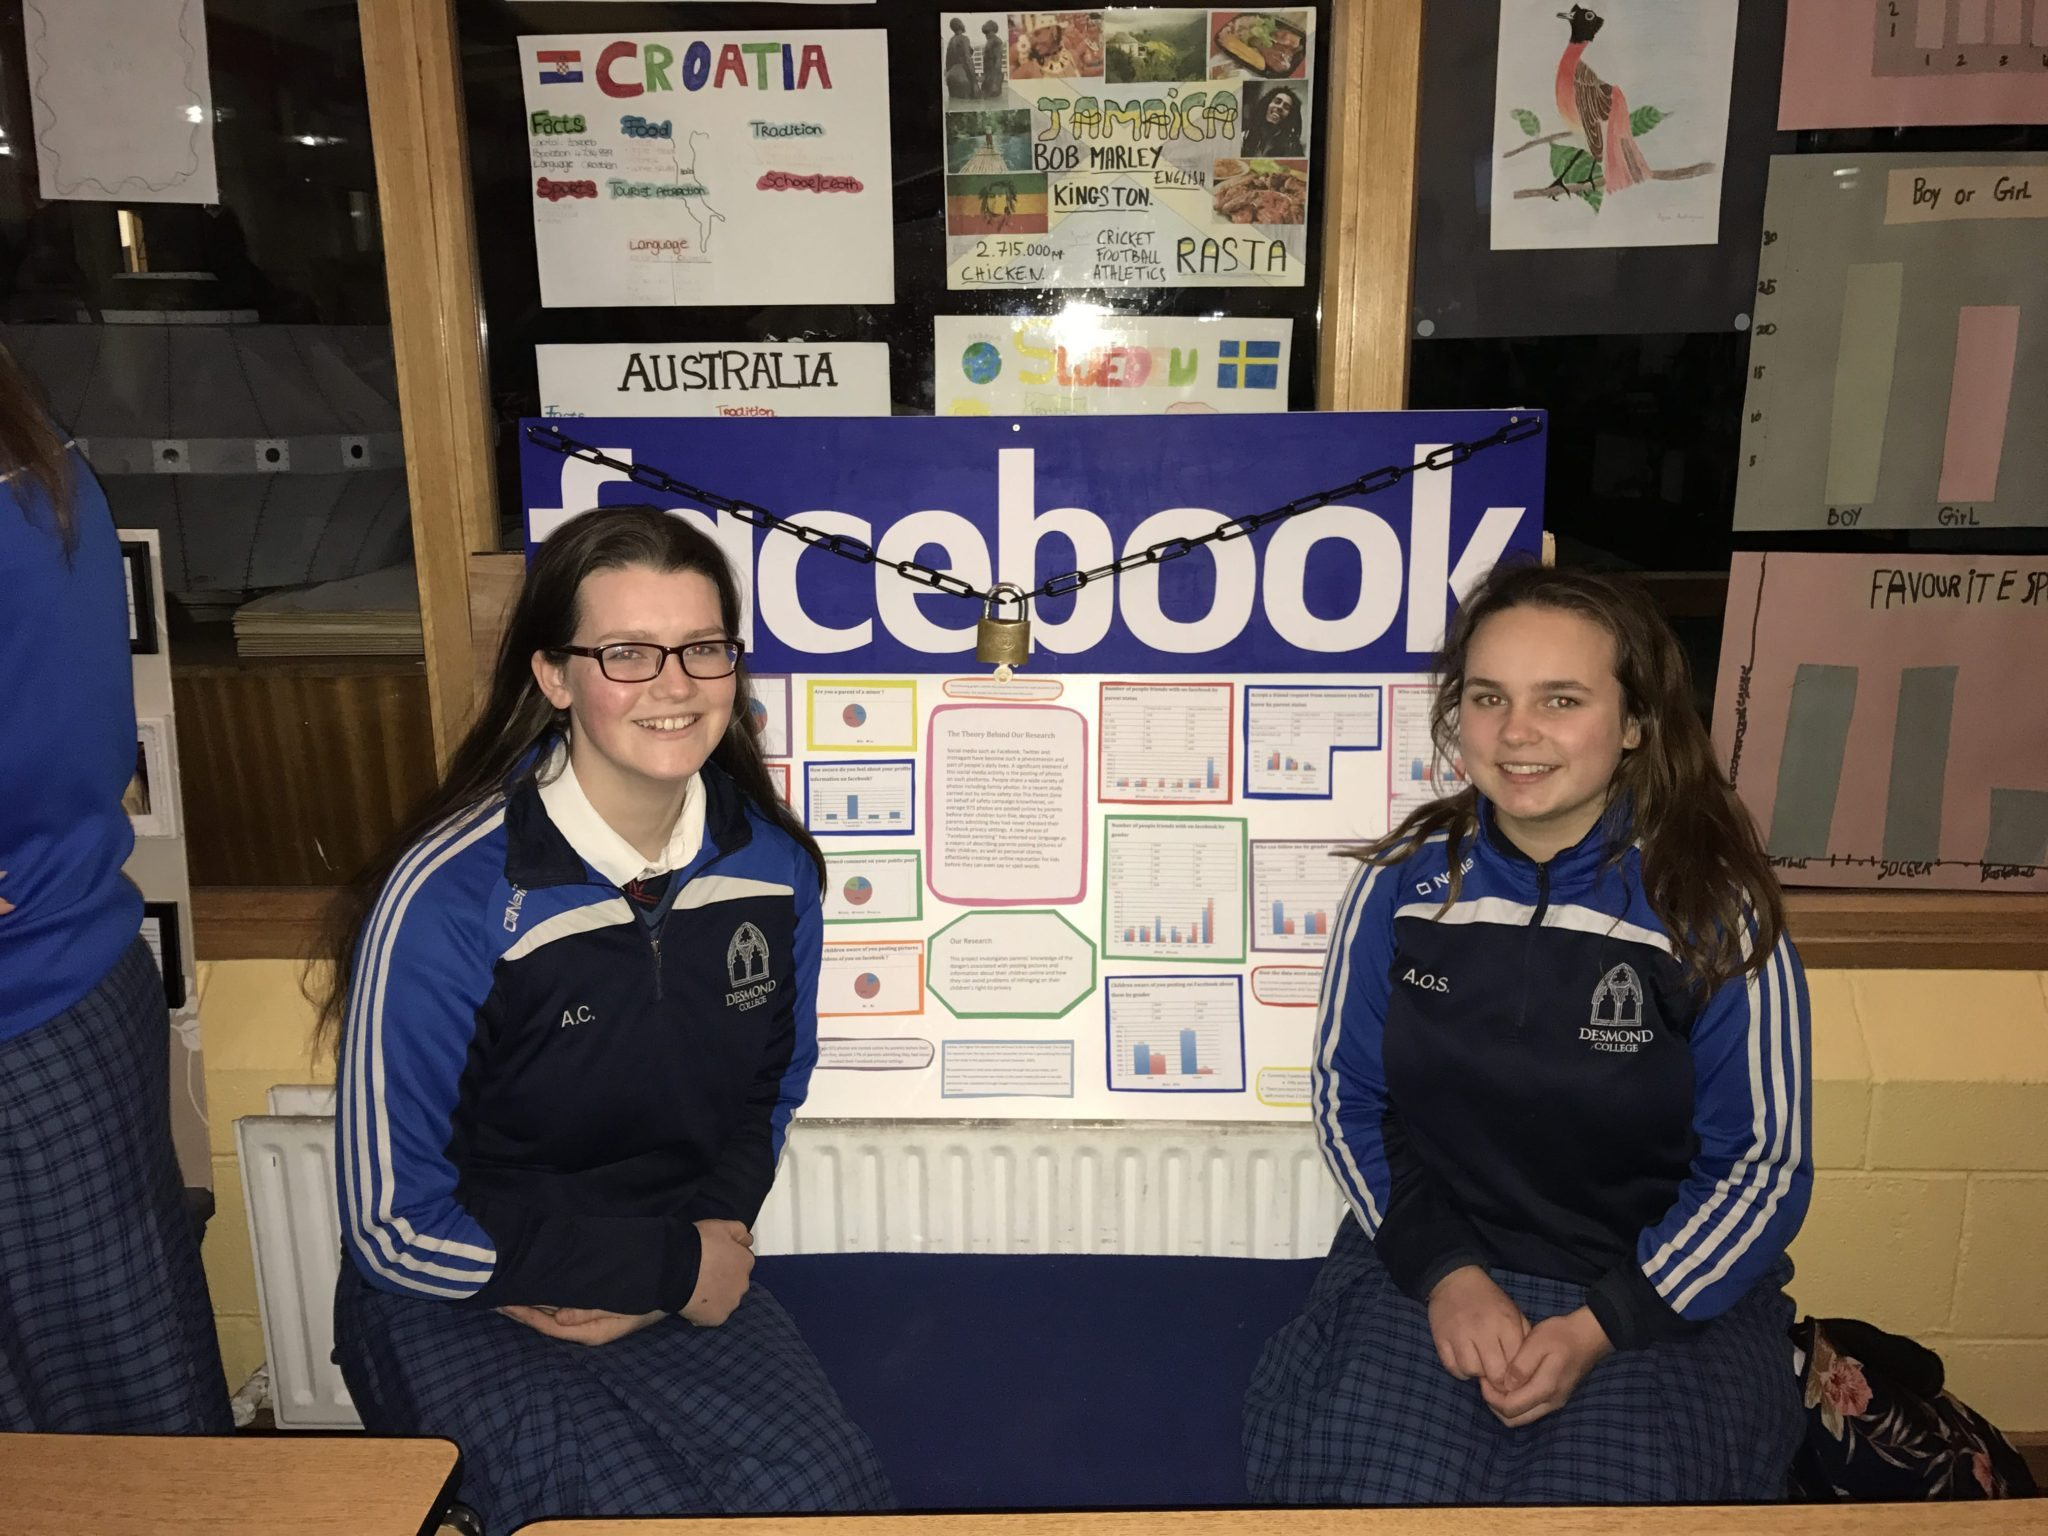 2017-01-11-an-investigation-into-to-parents-use-of-social-media-and-their-awareness-of-privacy-settings-intermediate-social-and-behavioural-btyste2017